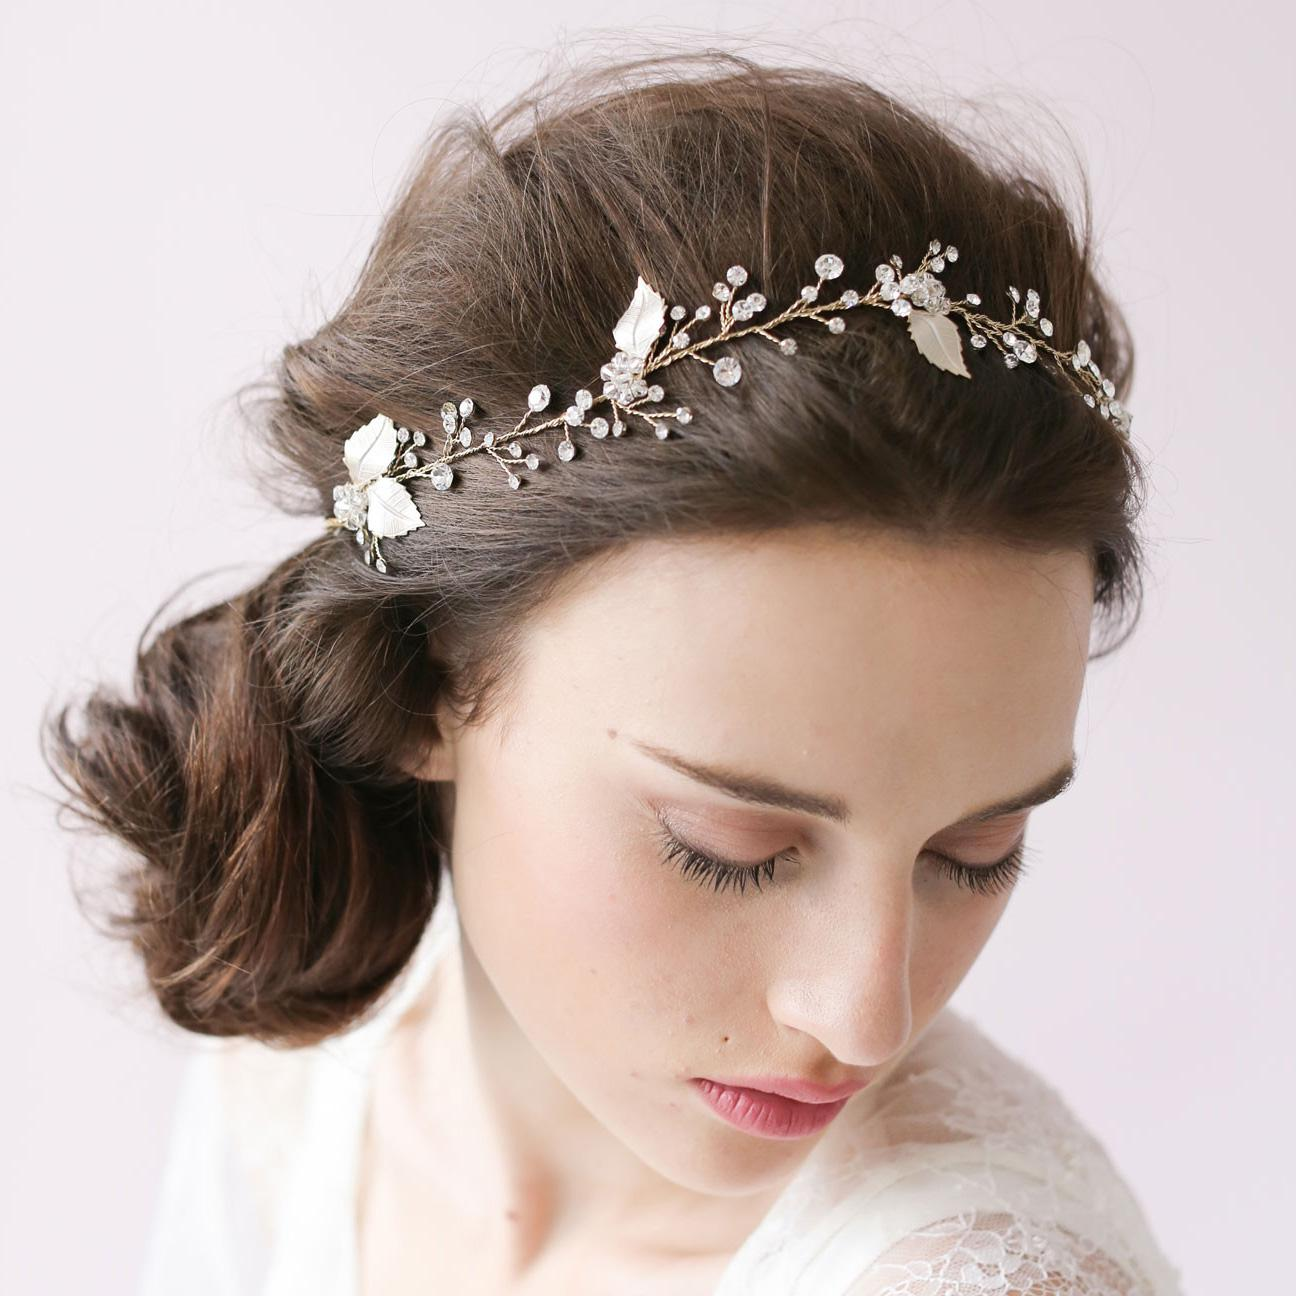 crystal sparkle hair vine petals blossom wedding headband bride accessories hair accessories vintage bridal combs rhinestone hair adornments